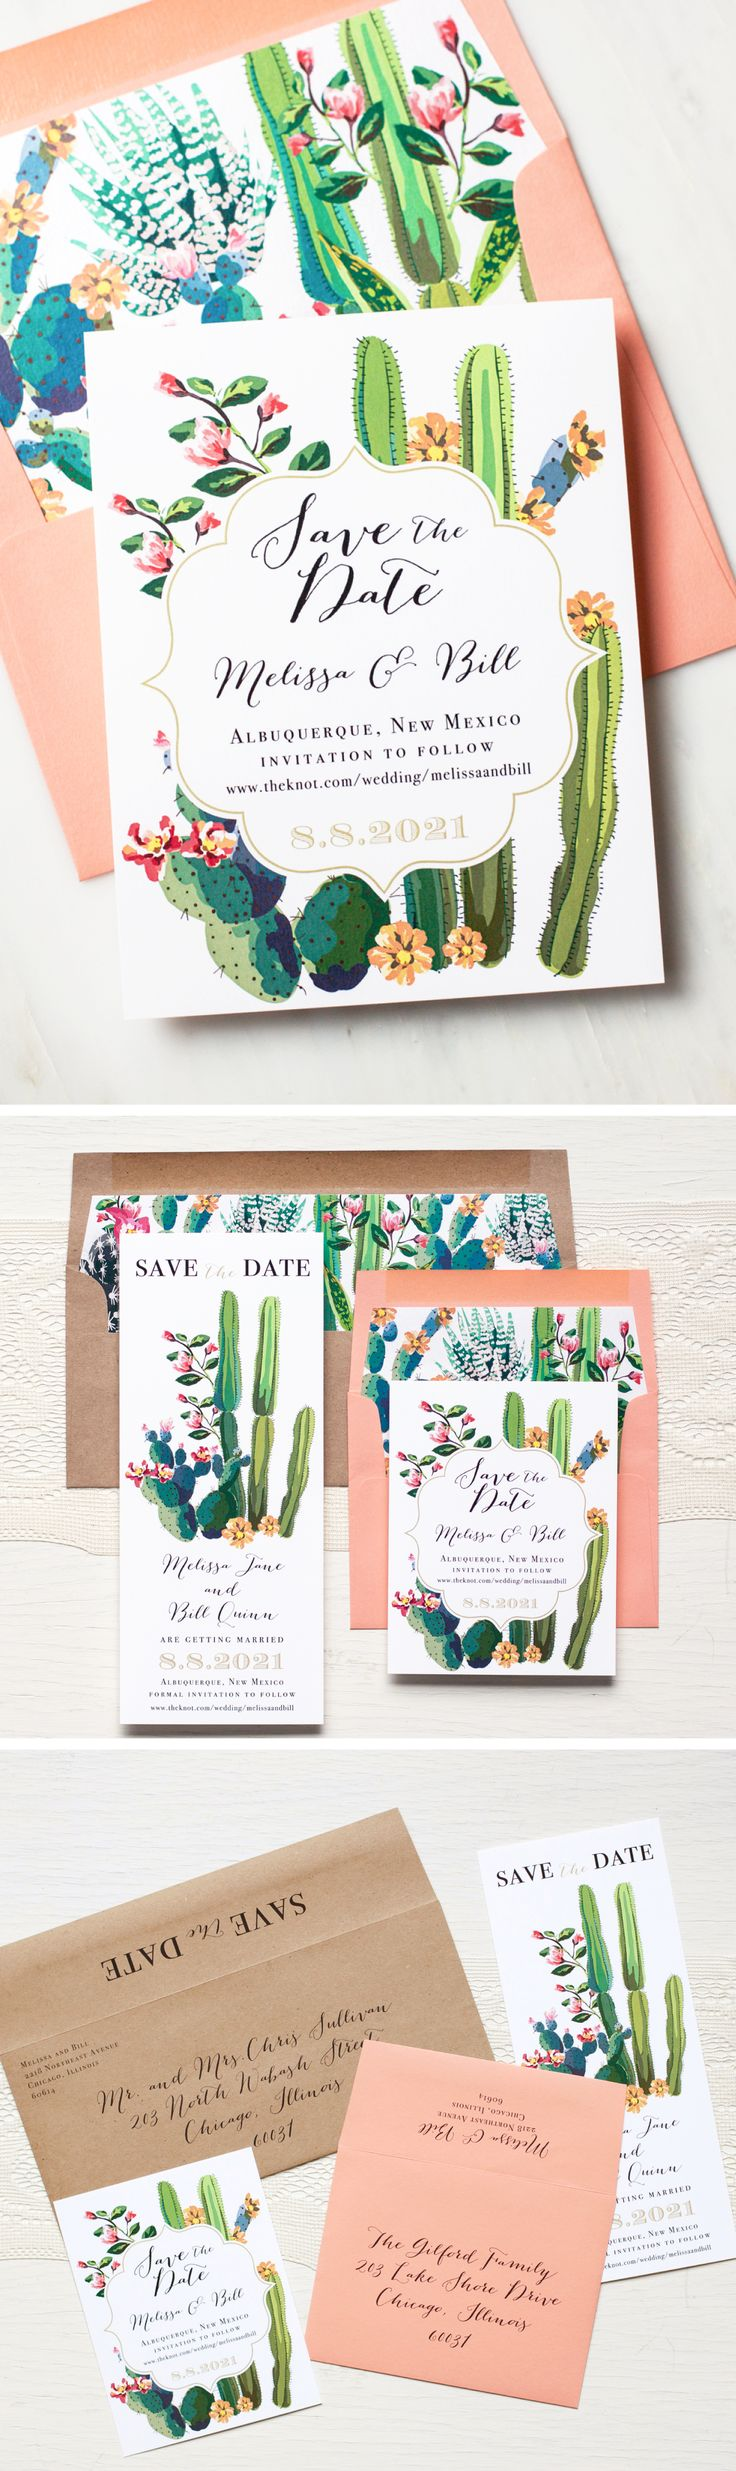 Desert Chic! Unique cactus inspired save the dates. So rustic and chic with colorful cactus graphics, floral blooms and soft coral.